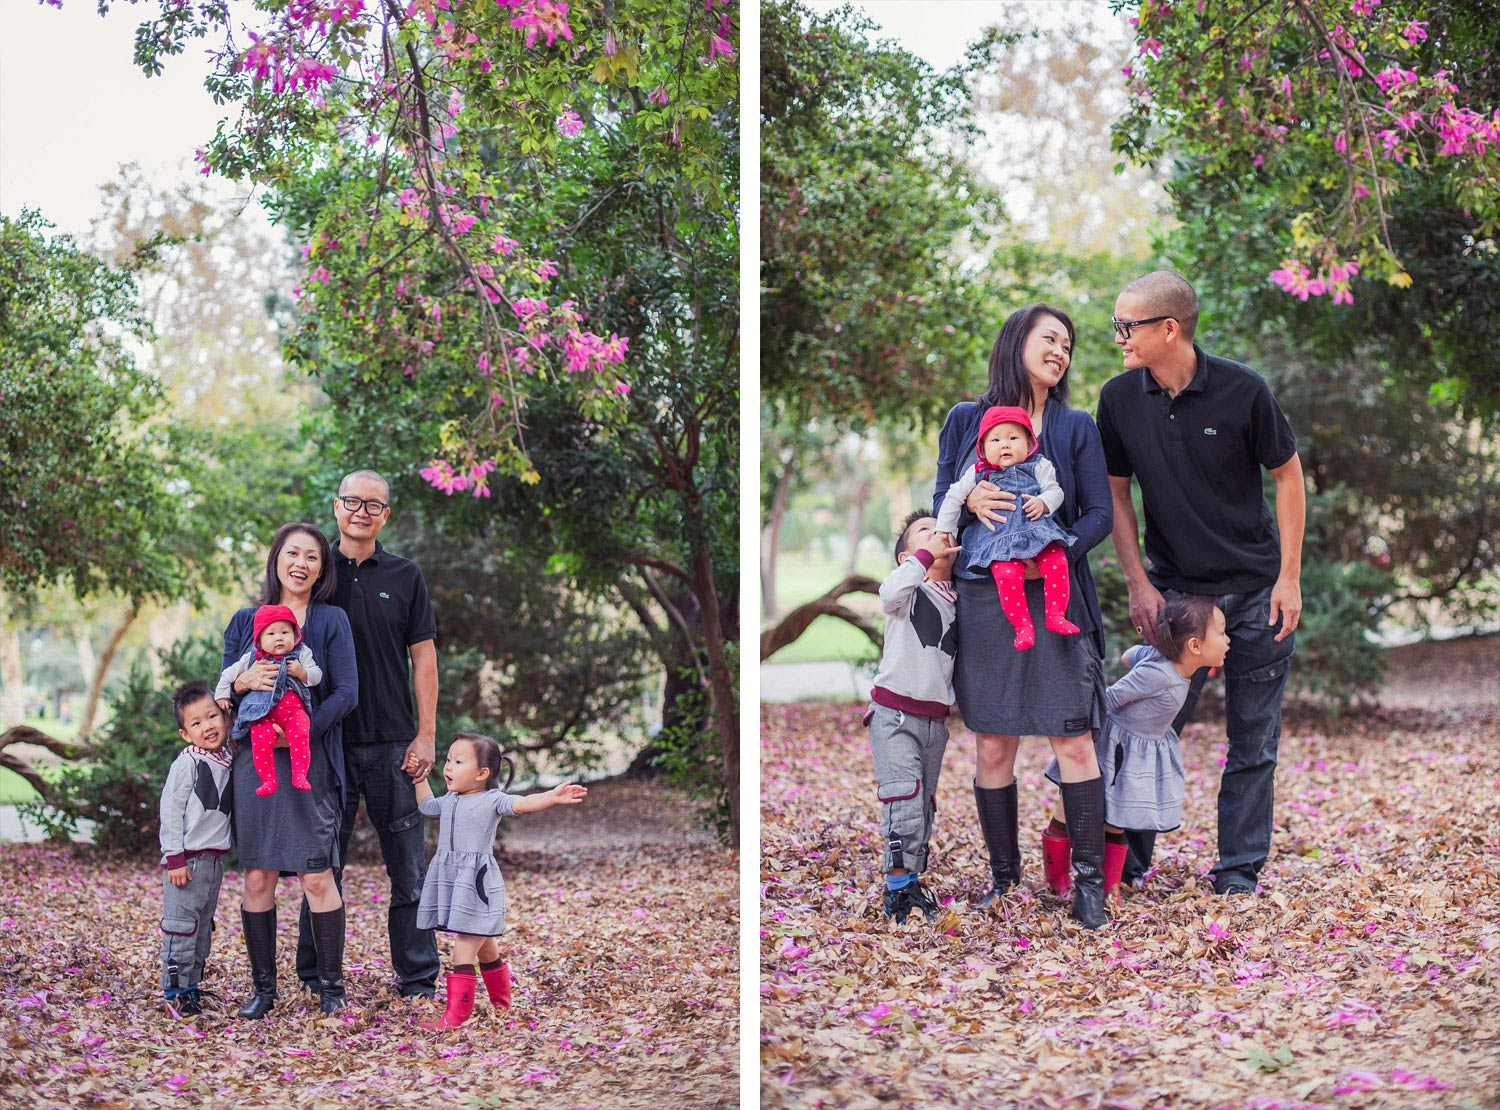 Lacy Park Family Portraits   Stephen Grant Photography